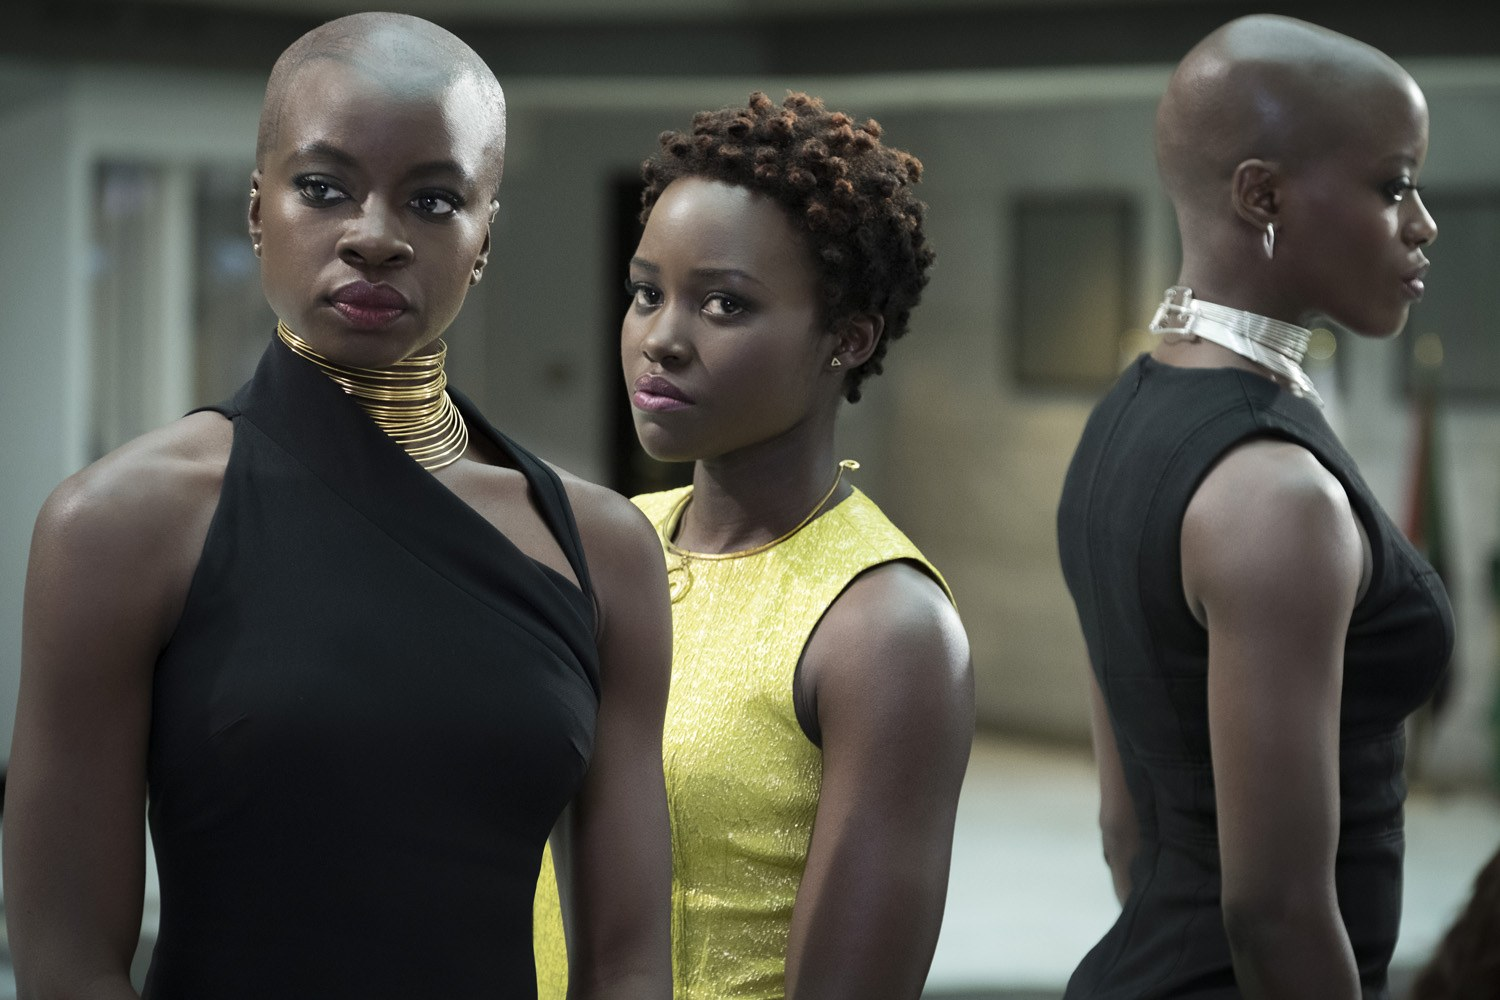 Danai Gurira's Okoye, Lupita Nyong'o's Nakia and Florence Kasumba's Ayo stand next to each other in dresses in <em>Black Panther</em